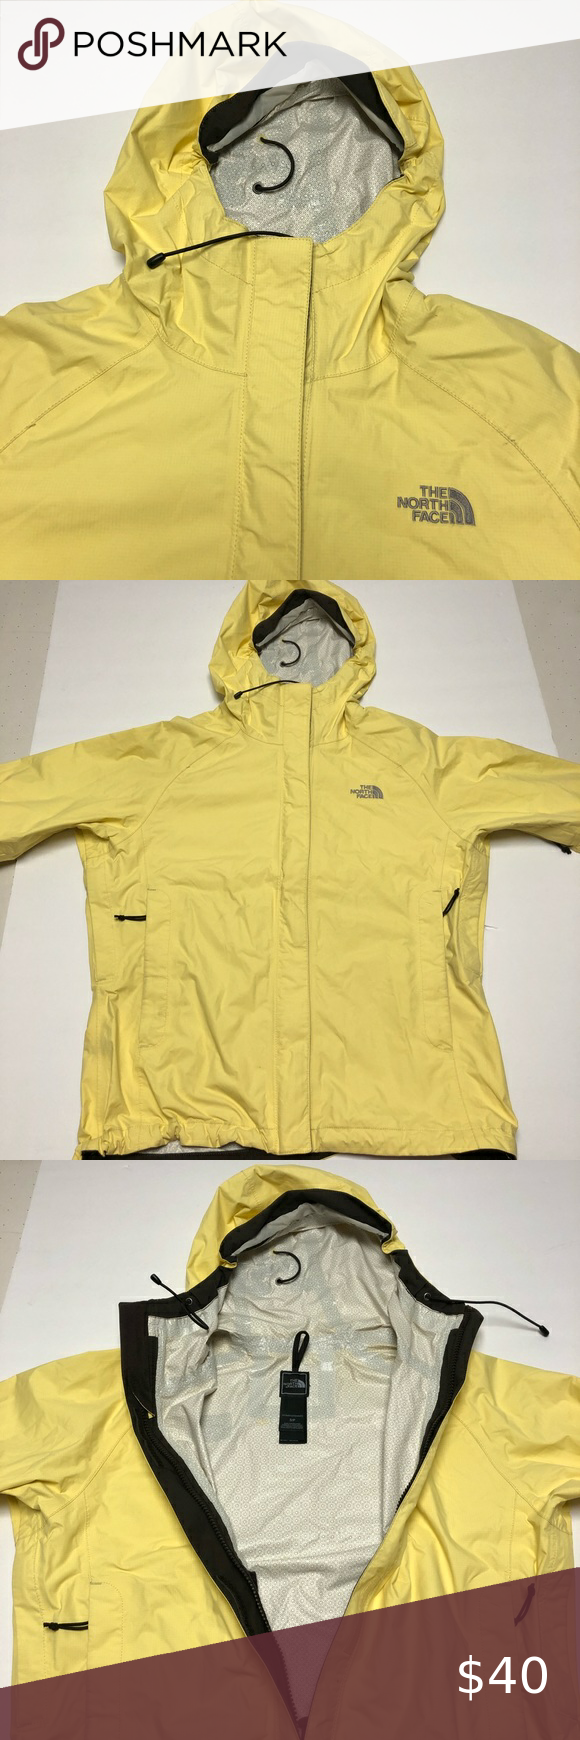 North Face Yellow Windbreaker Jacket Women S Small Small Stain On The Back Pictured Could Be Easy To Rem Yellow Windbreaker Windbreaker Jacket Women Jackets [ 1740 x 580 Pixel ]